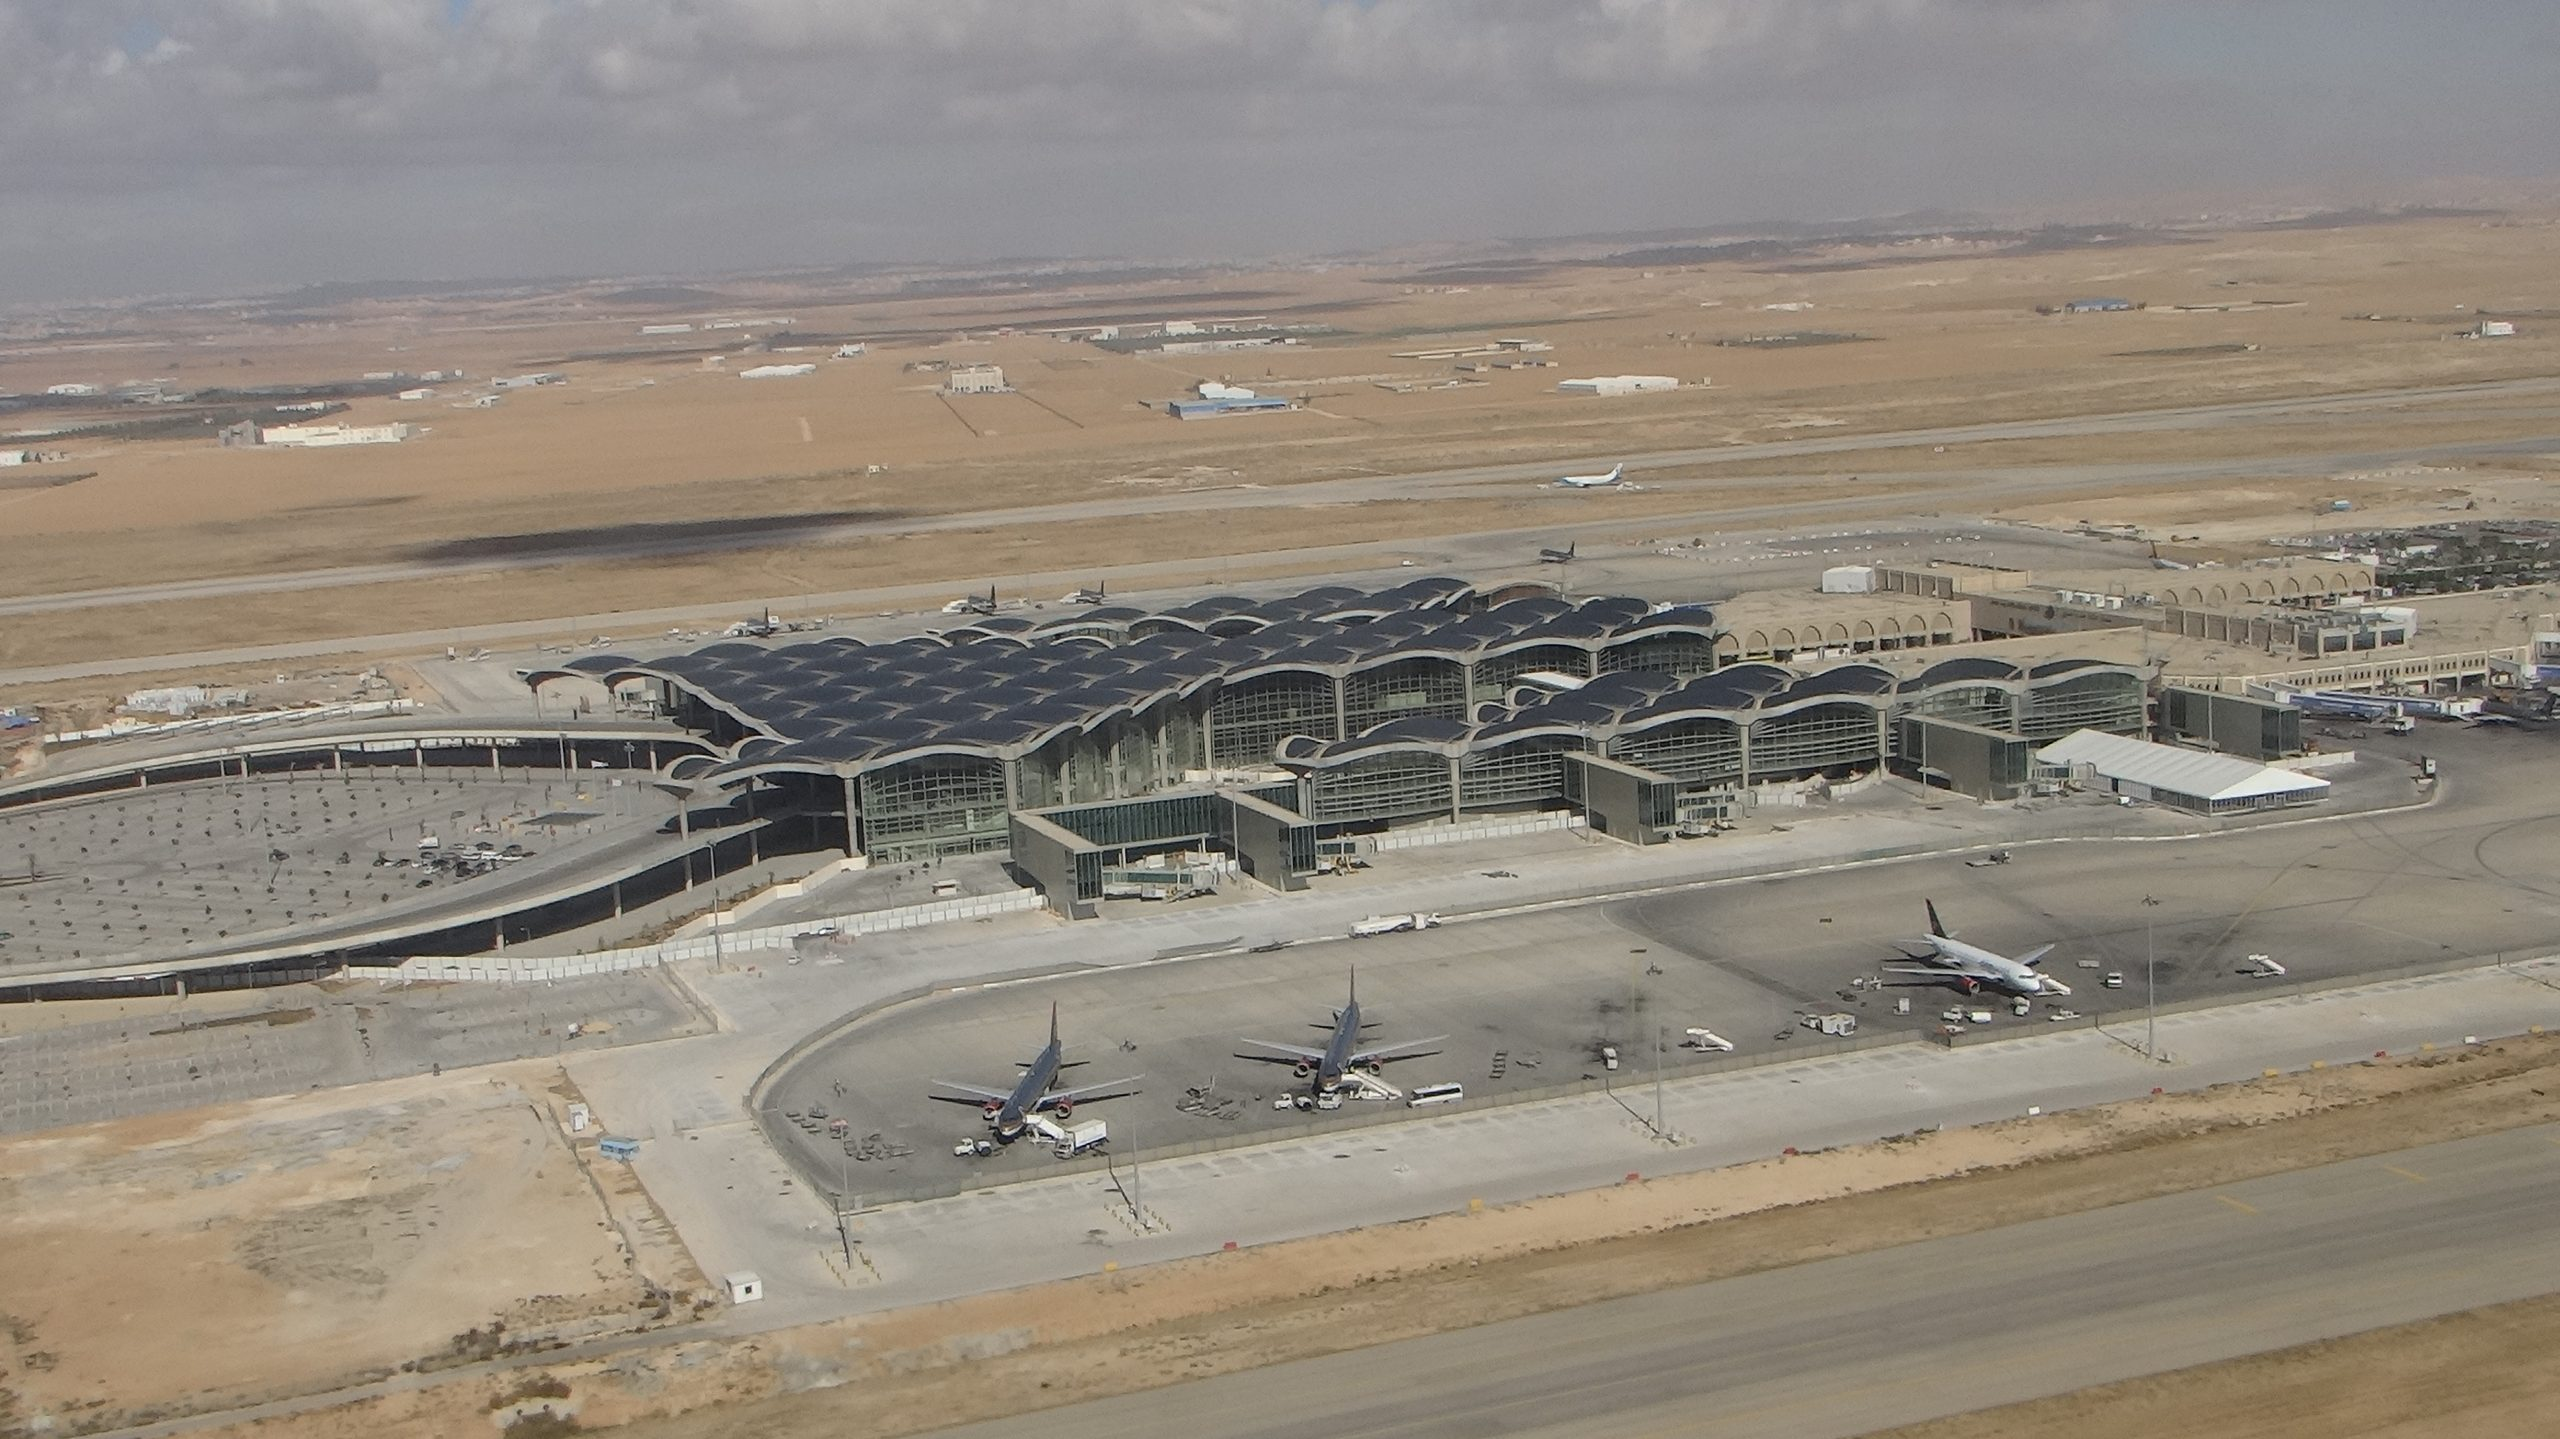 Queen Alia International Airport Security Area Development